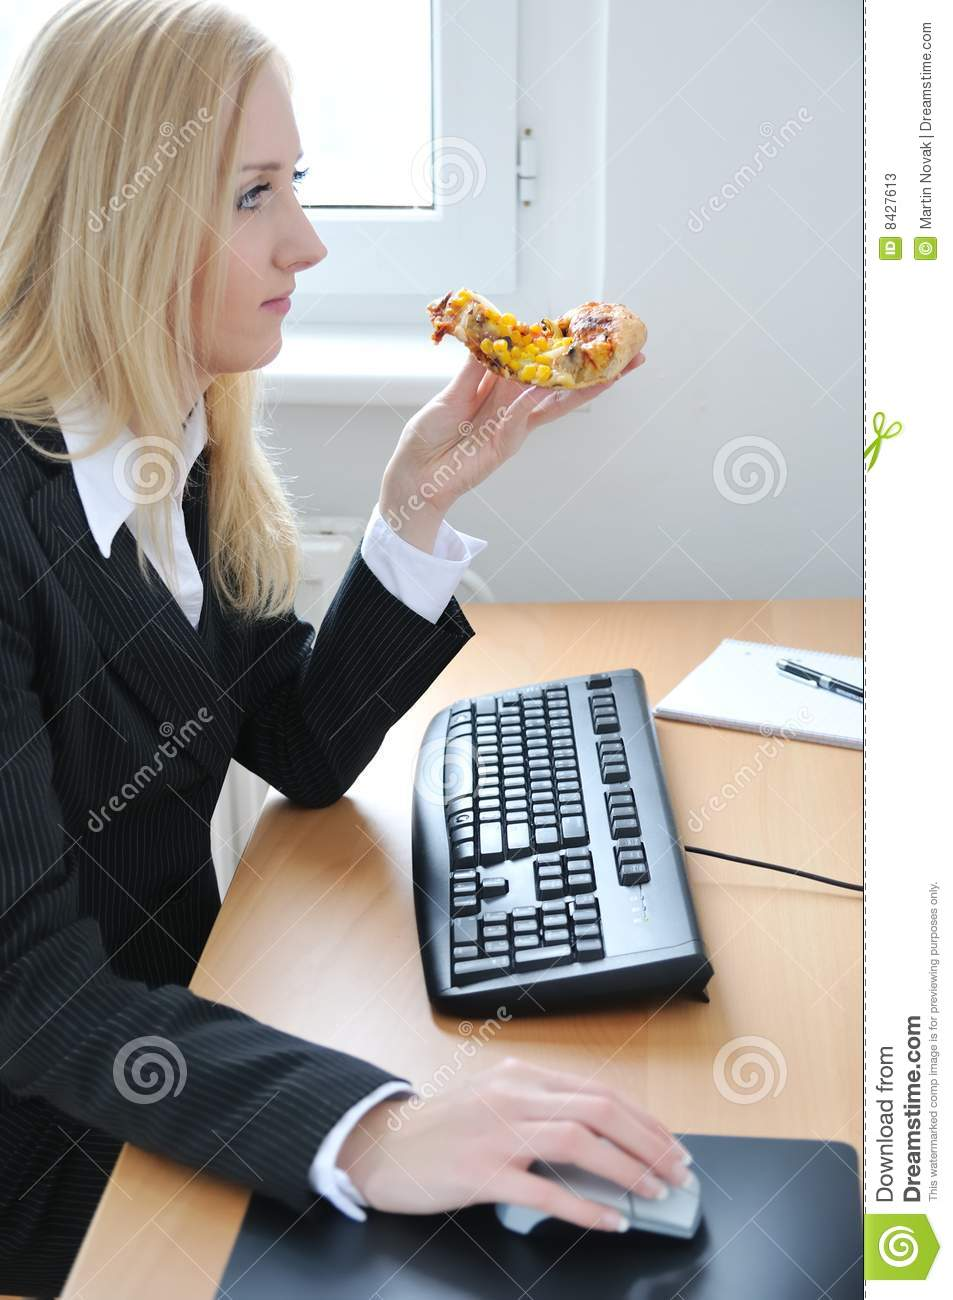 Eating pizza at work